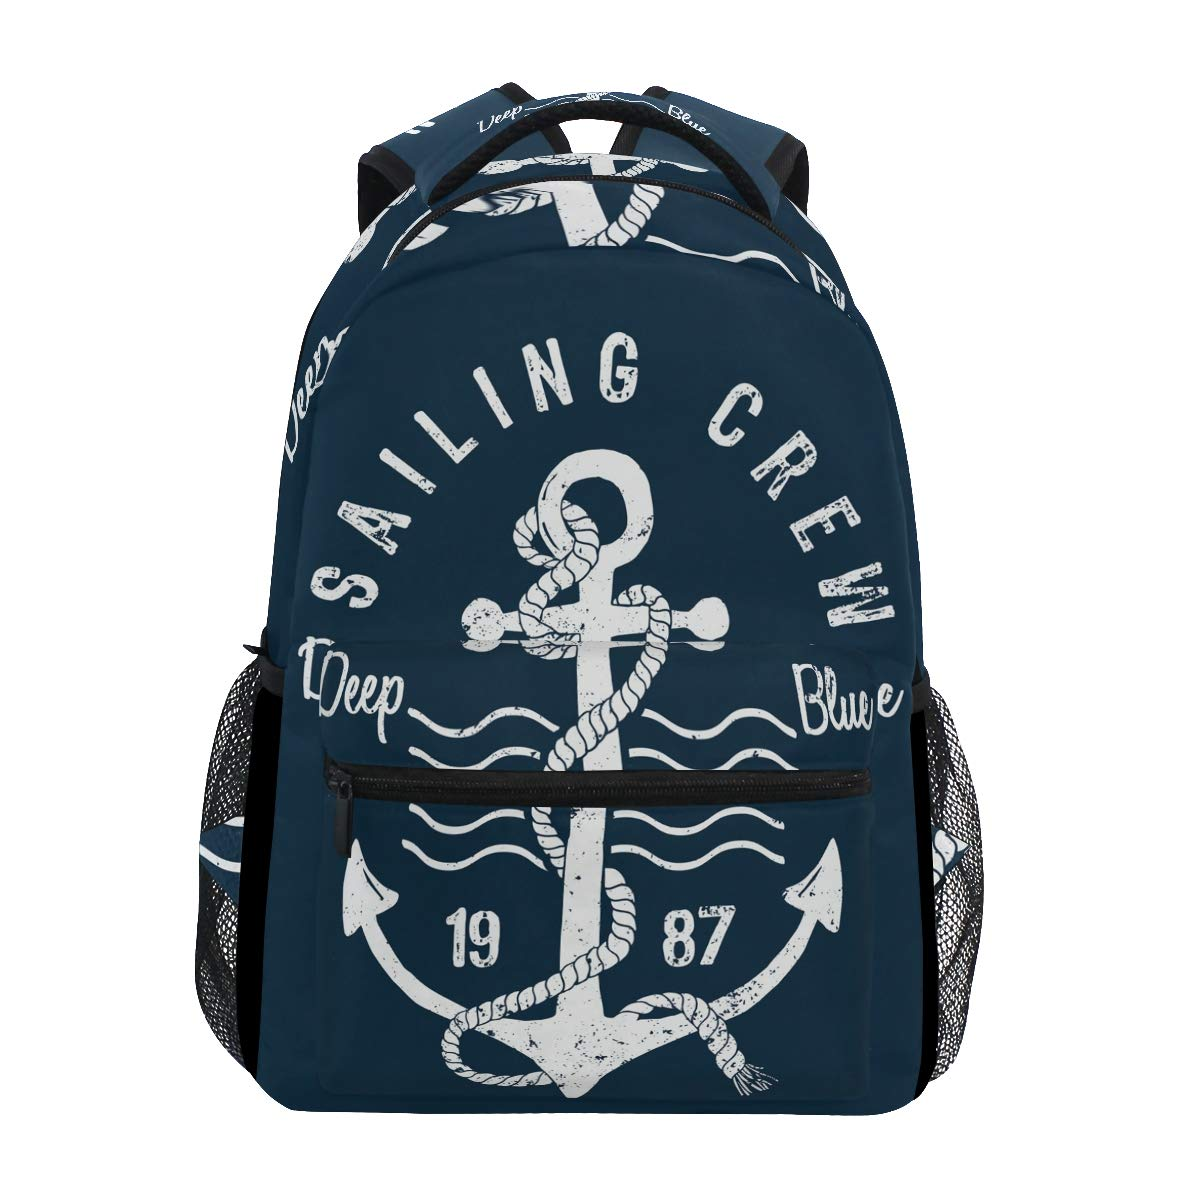 KUWT Ocean Sea Nautical Anchor School Backpack Casual Shoulder Bag College Bookbag Travel Hiking Daypack by KUWT